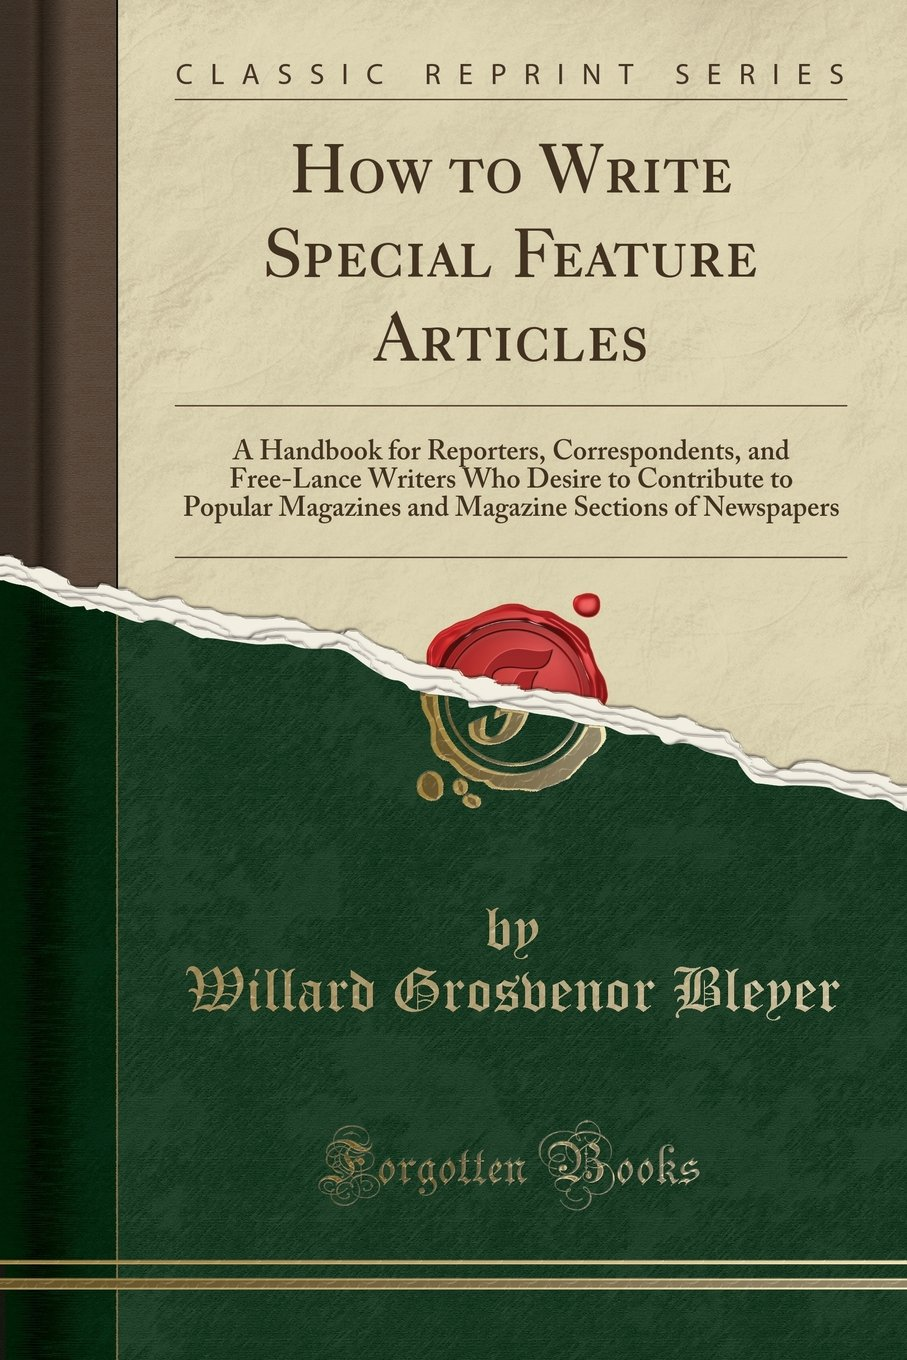 Download How to Write Special Feature Articles: A Handbook for Reporters, Correspondents, and Free-Lance Writers Who Desire to Contribute to Popular Magazines ... Sections of Newspapers (Classic Reprint) PDF